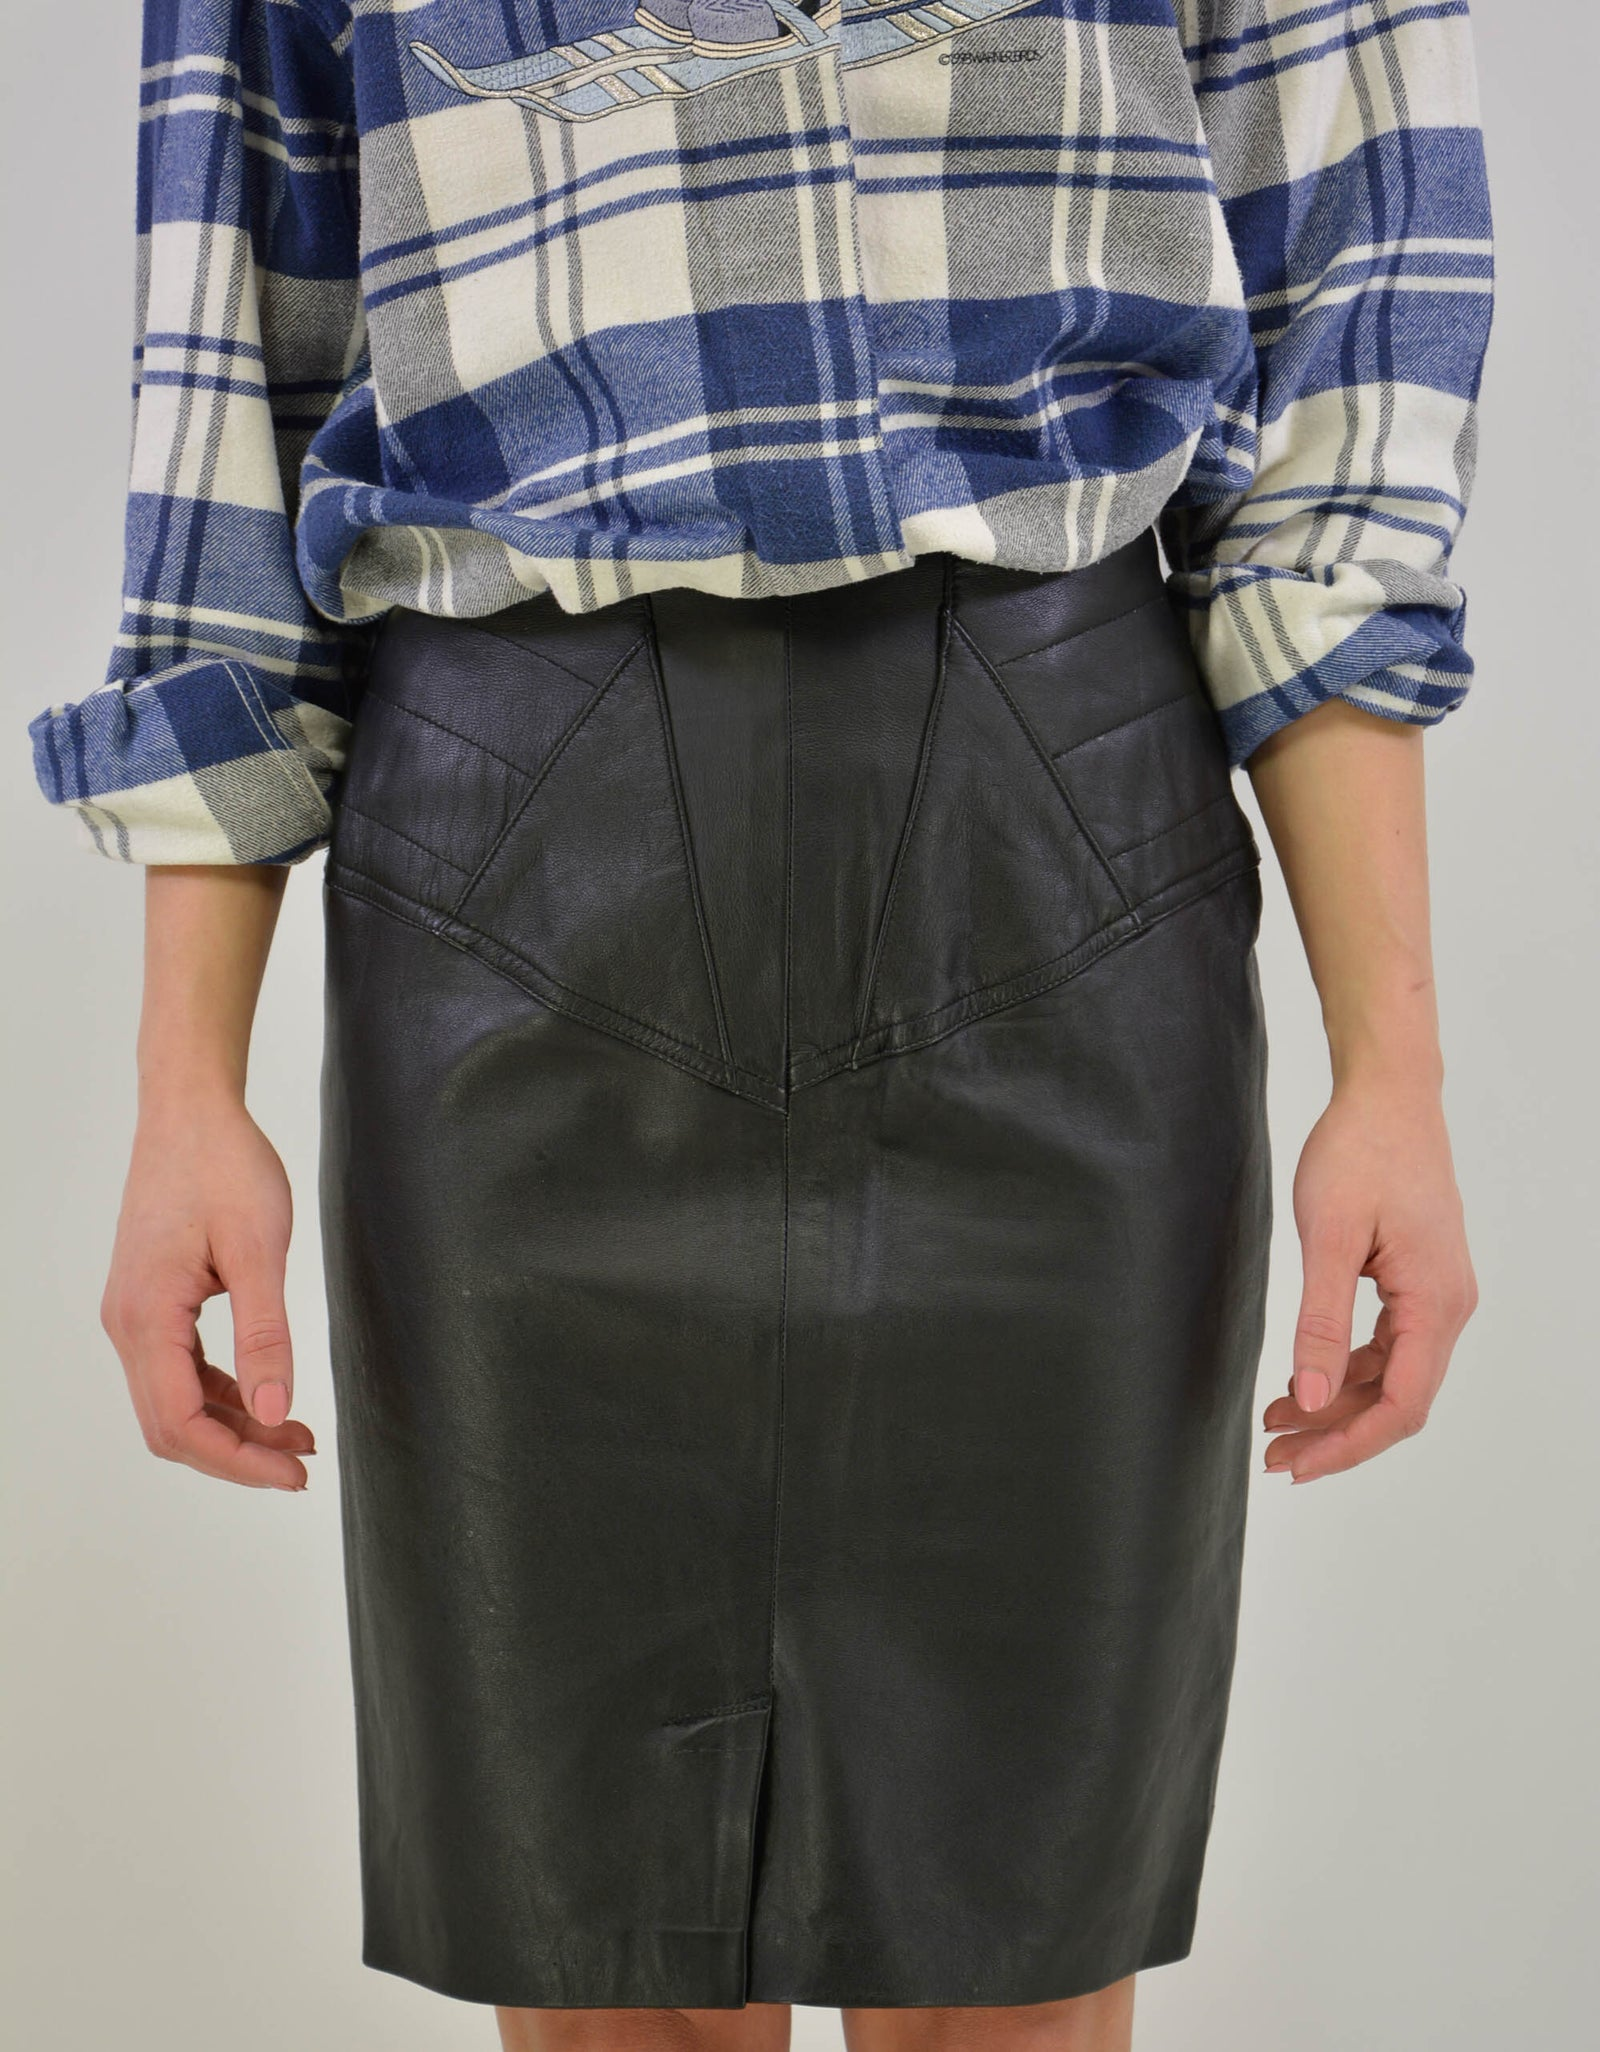 Black leather skirt - PICKNWEIGHT - VINTAGE KILO STORE